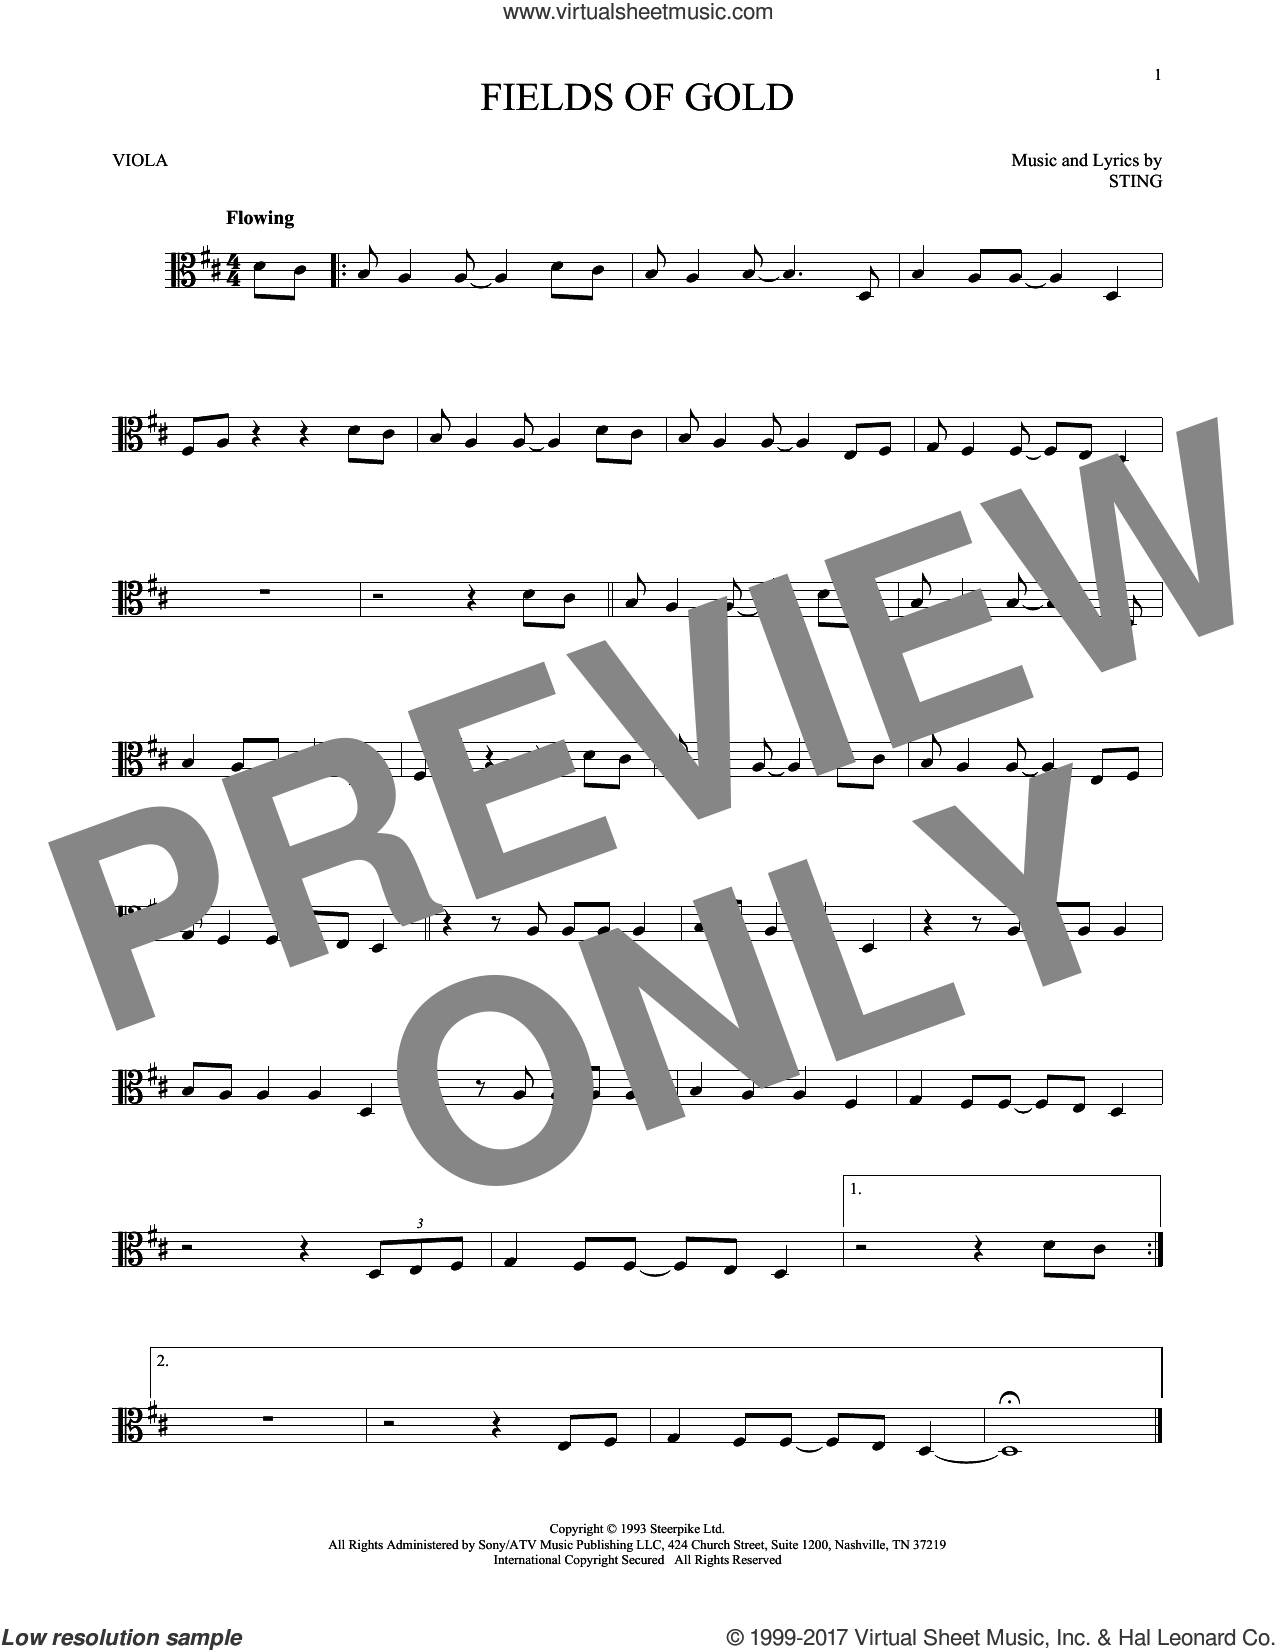 Fields Of Gold sheet music for viola solo by Sting, intermediate skill level